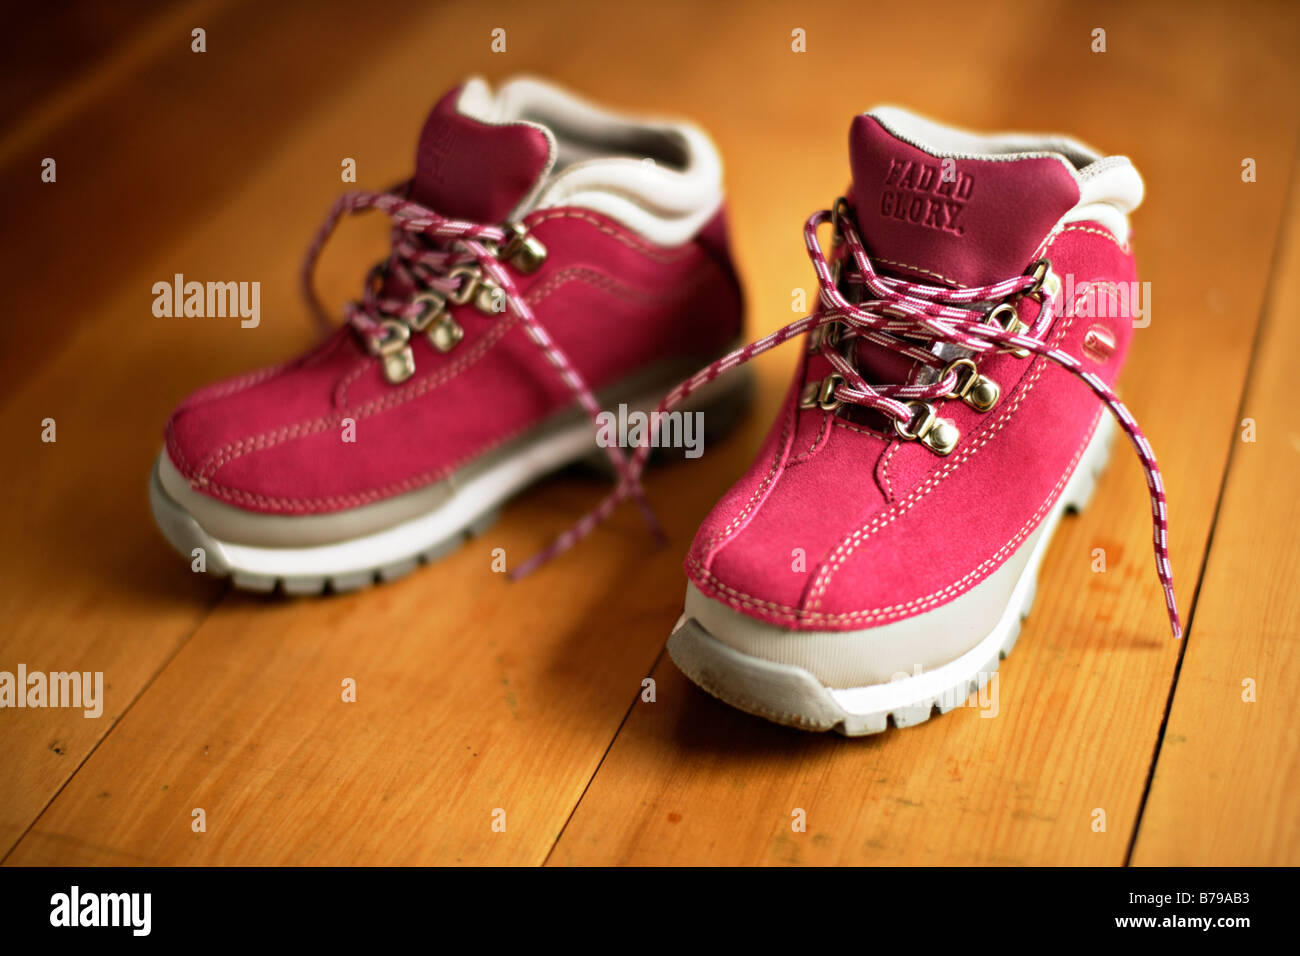 Girl's pink boots to fit a five year old - Stock Image